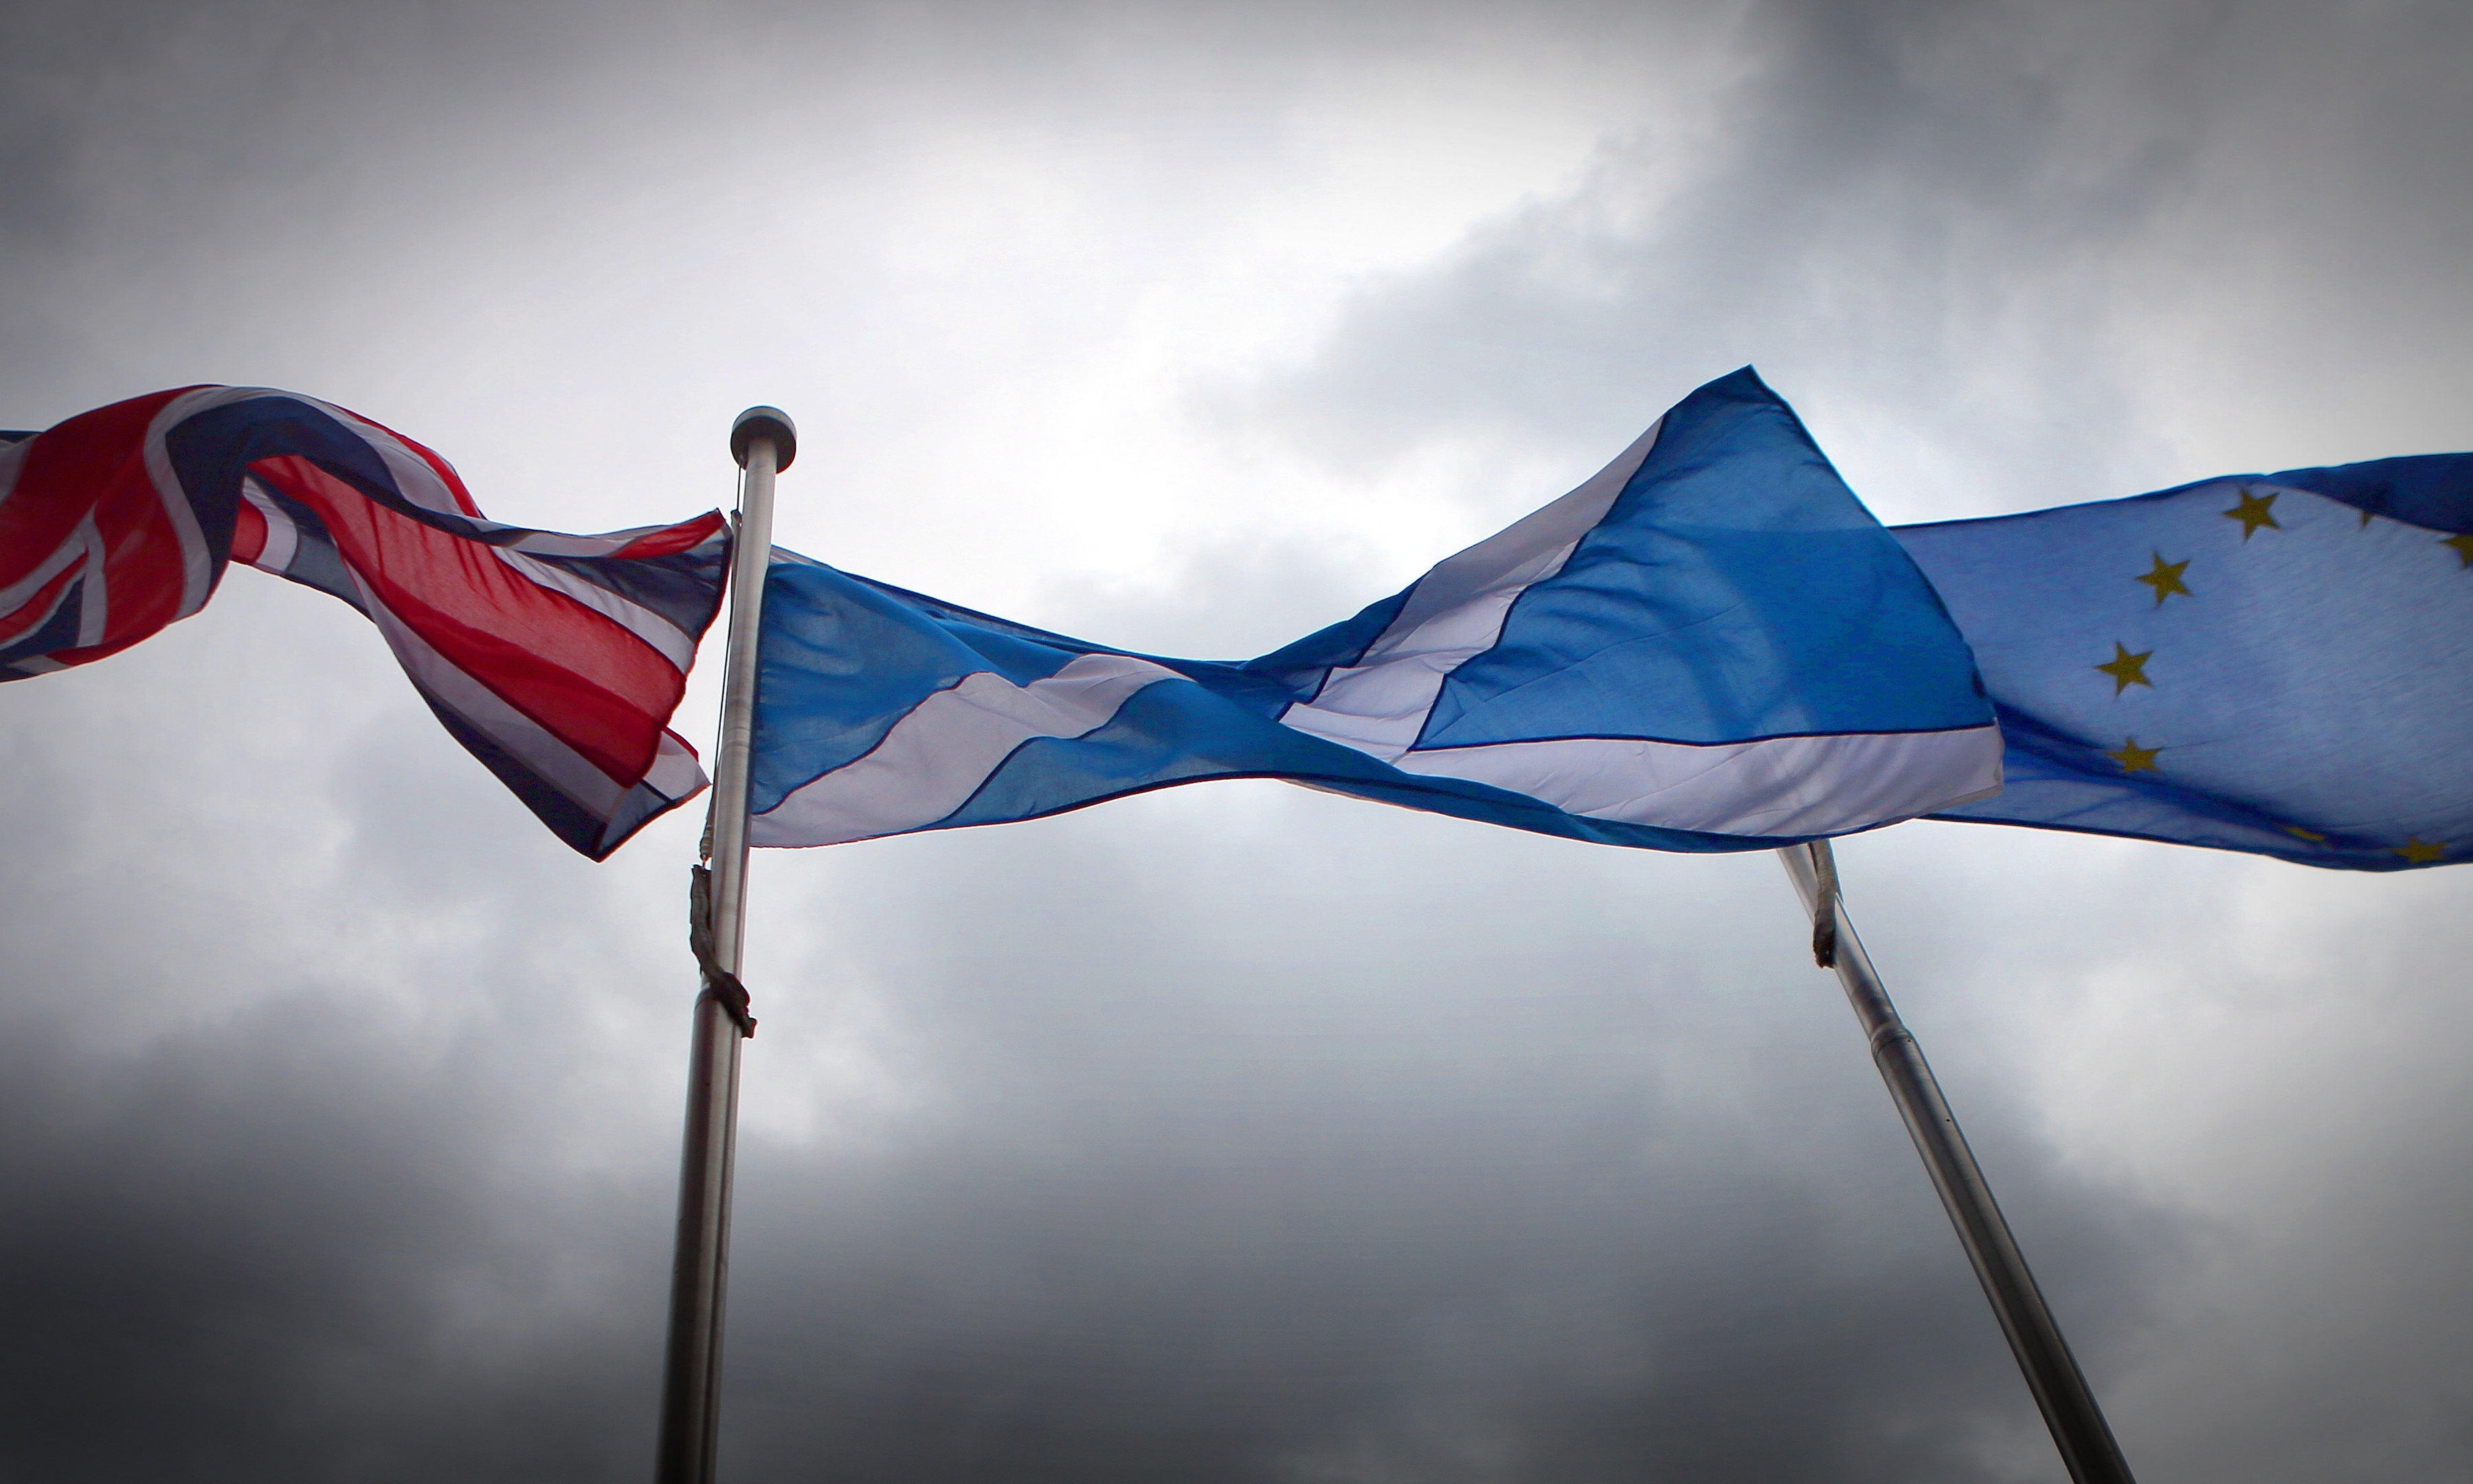 We need a new independence offering for the current political environment, says Pete Wishart.